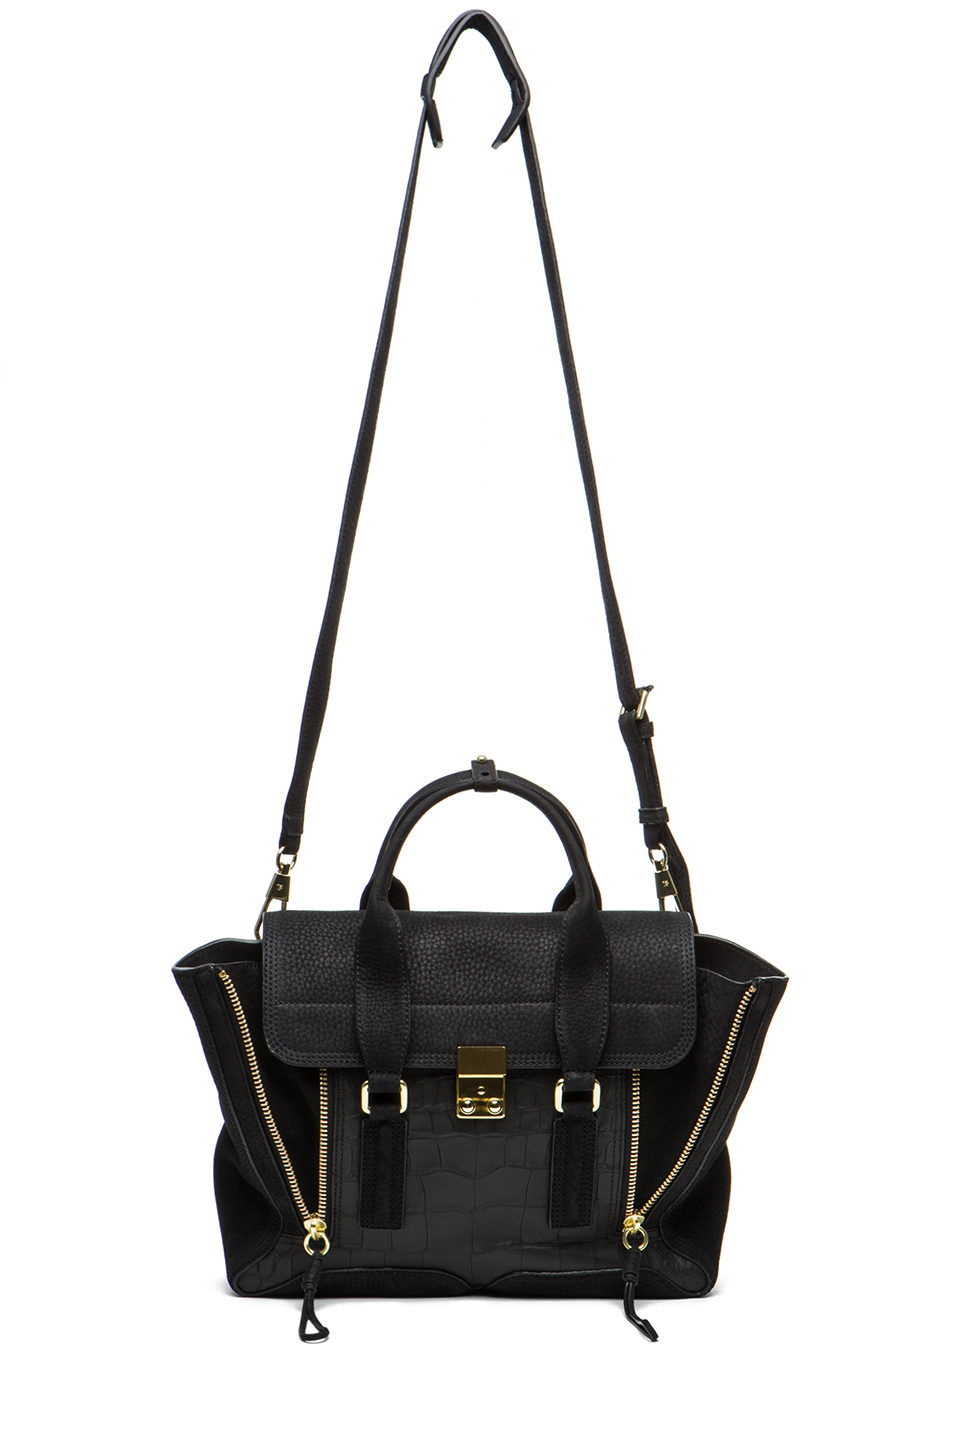 3.1 phillip lim|Pashli Medium Satchel in Black Croc